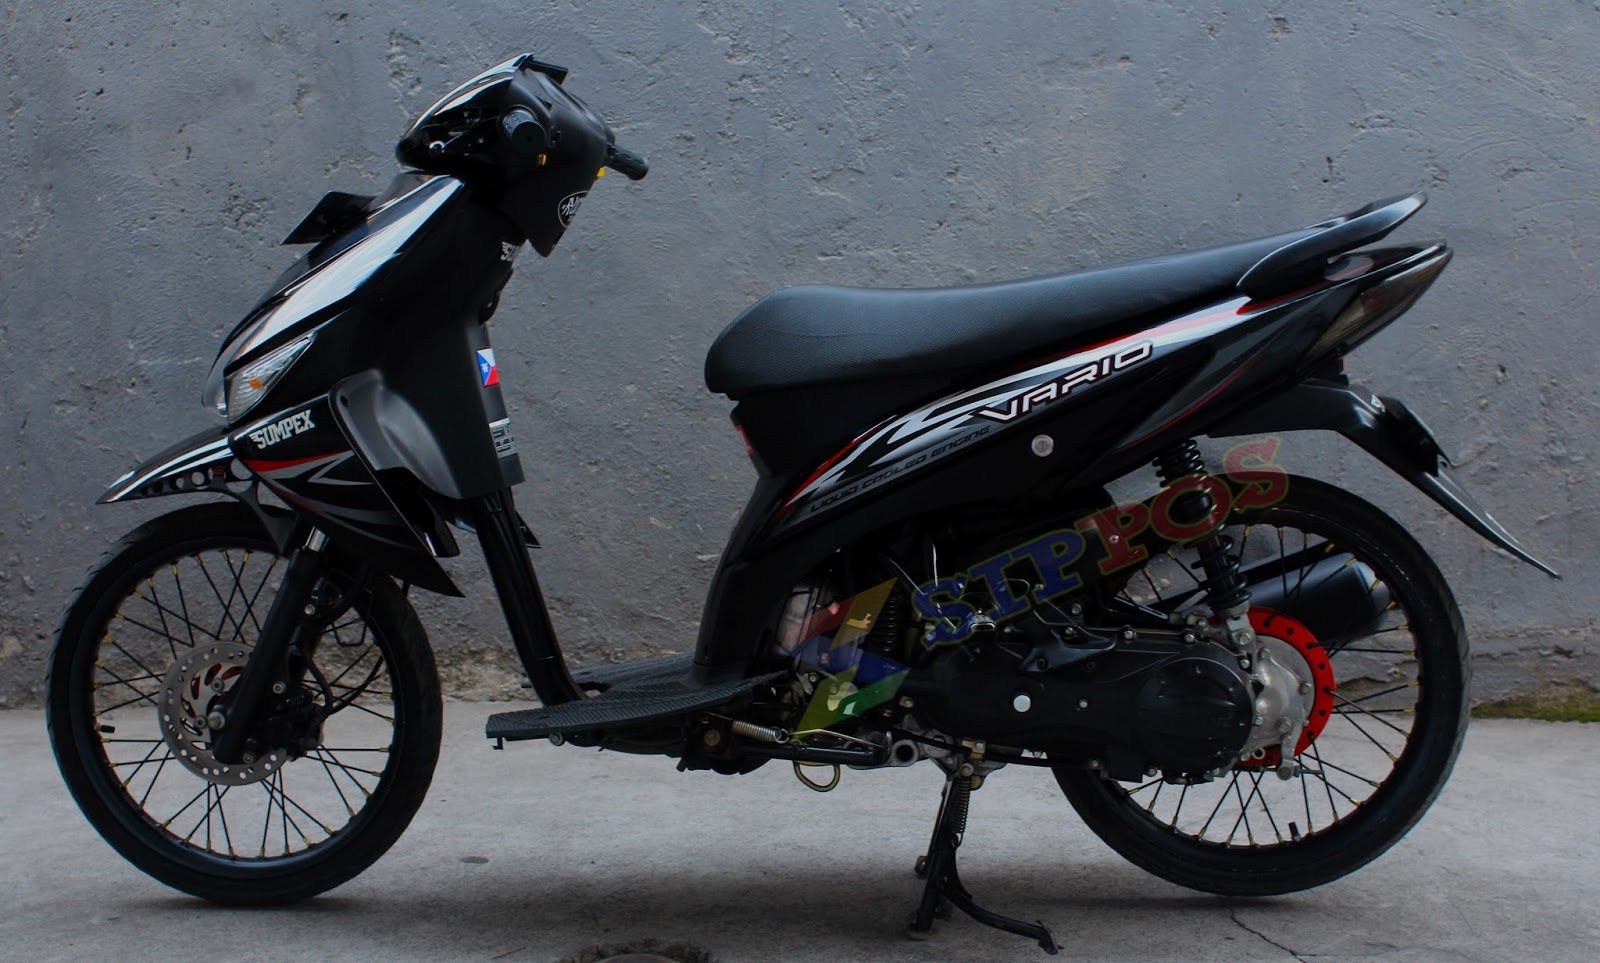 20 Gambar Modifikasi Honda Vario CW Terbaru 2015 Ala Drag Simple